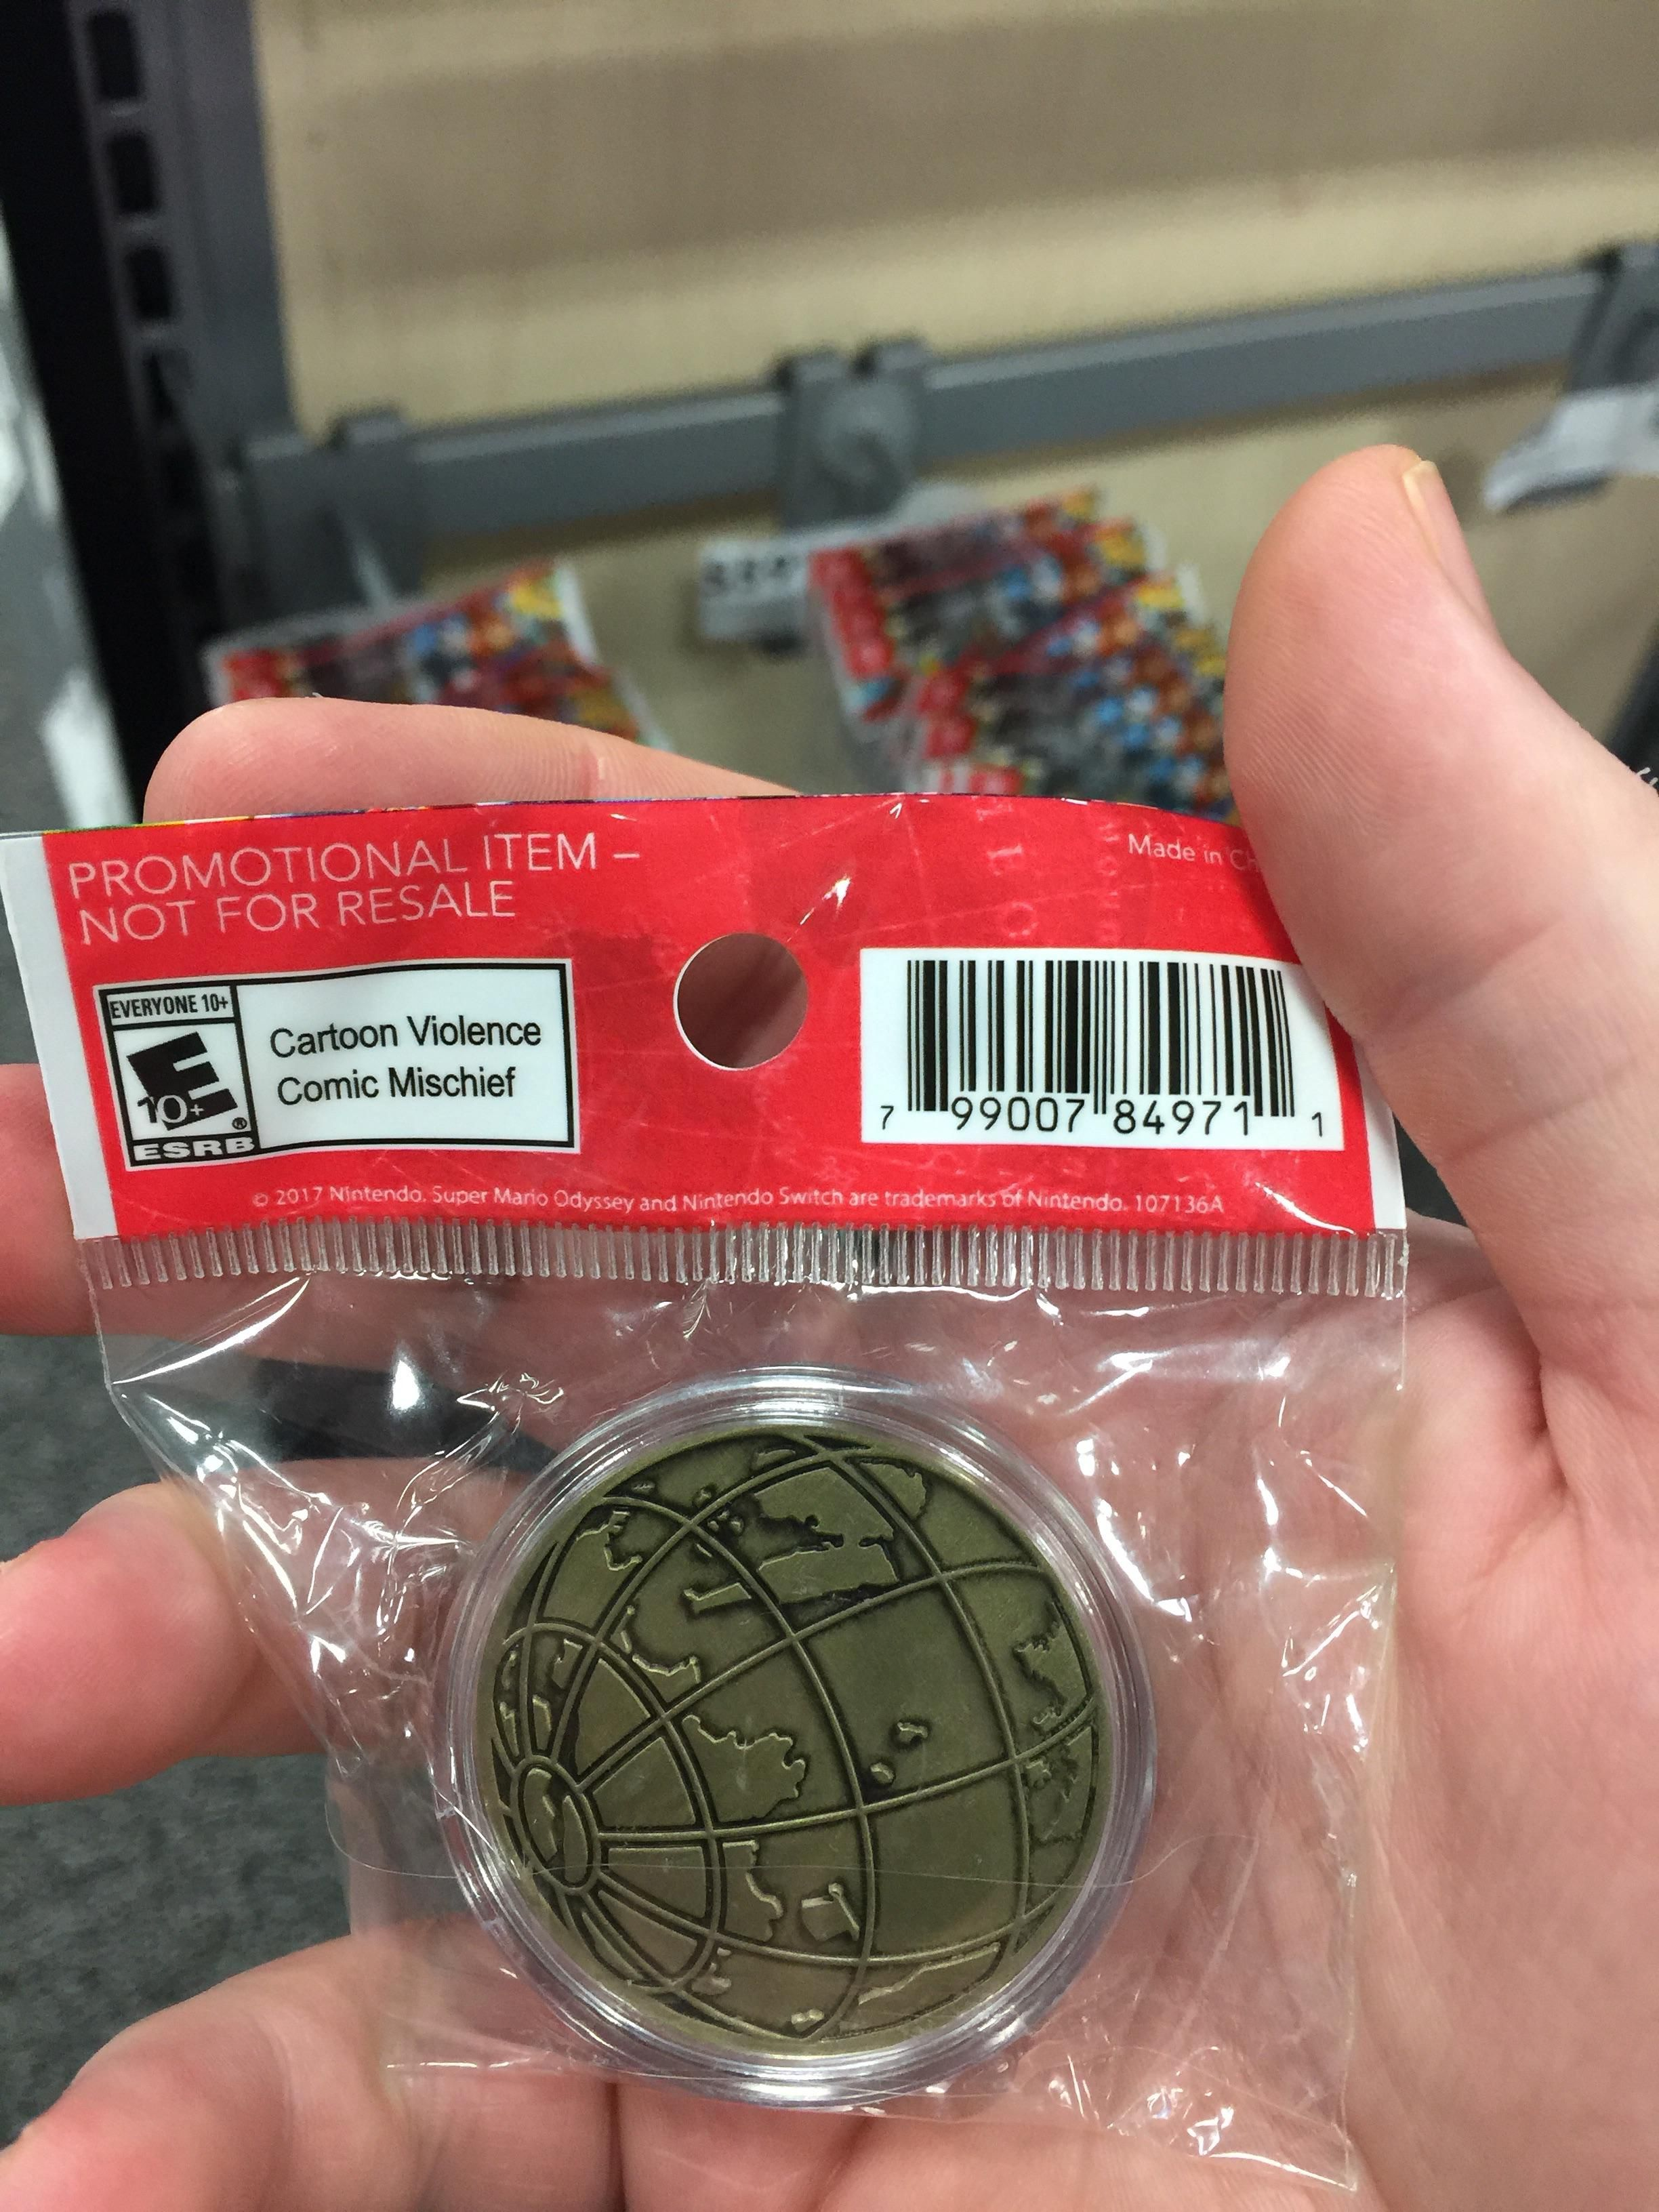 Best Buy is selling the collectible coins from Super Mario